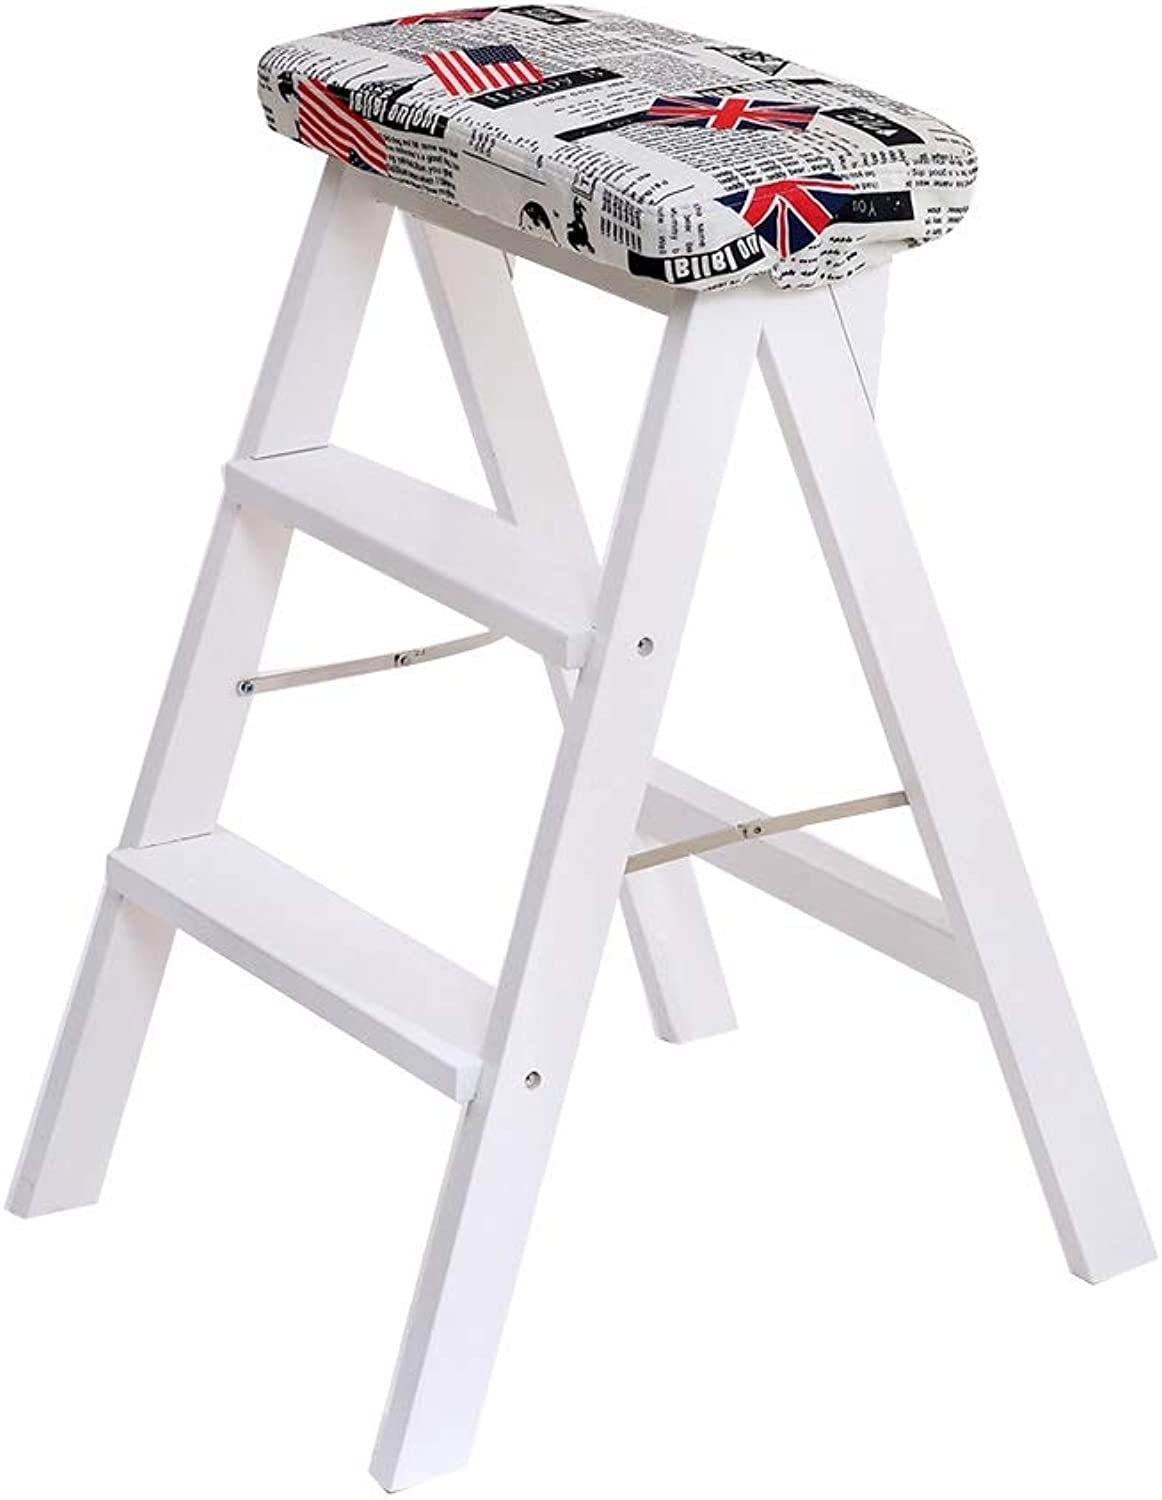 Ladder Folding Ladder, Modern Simplicity Foldable Ladder Stool Dual Purpose Portable Household Solid Wood Kitchen Zuodeng (color   F)